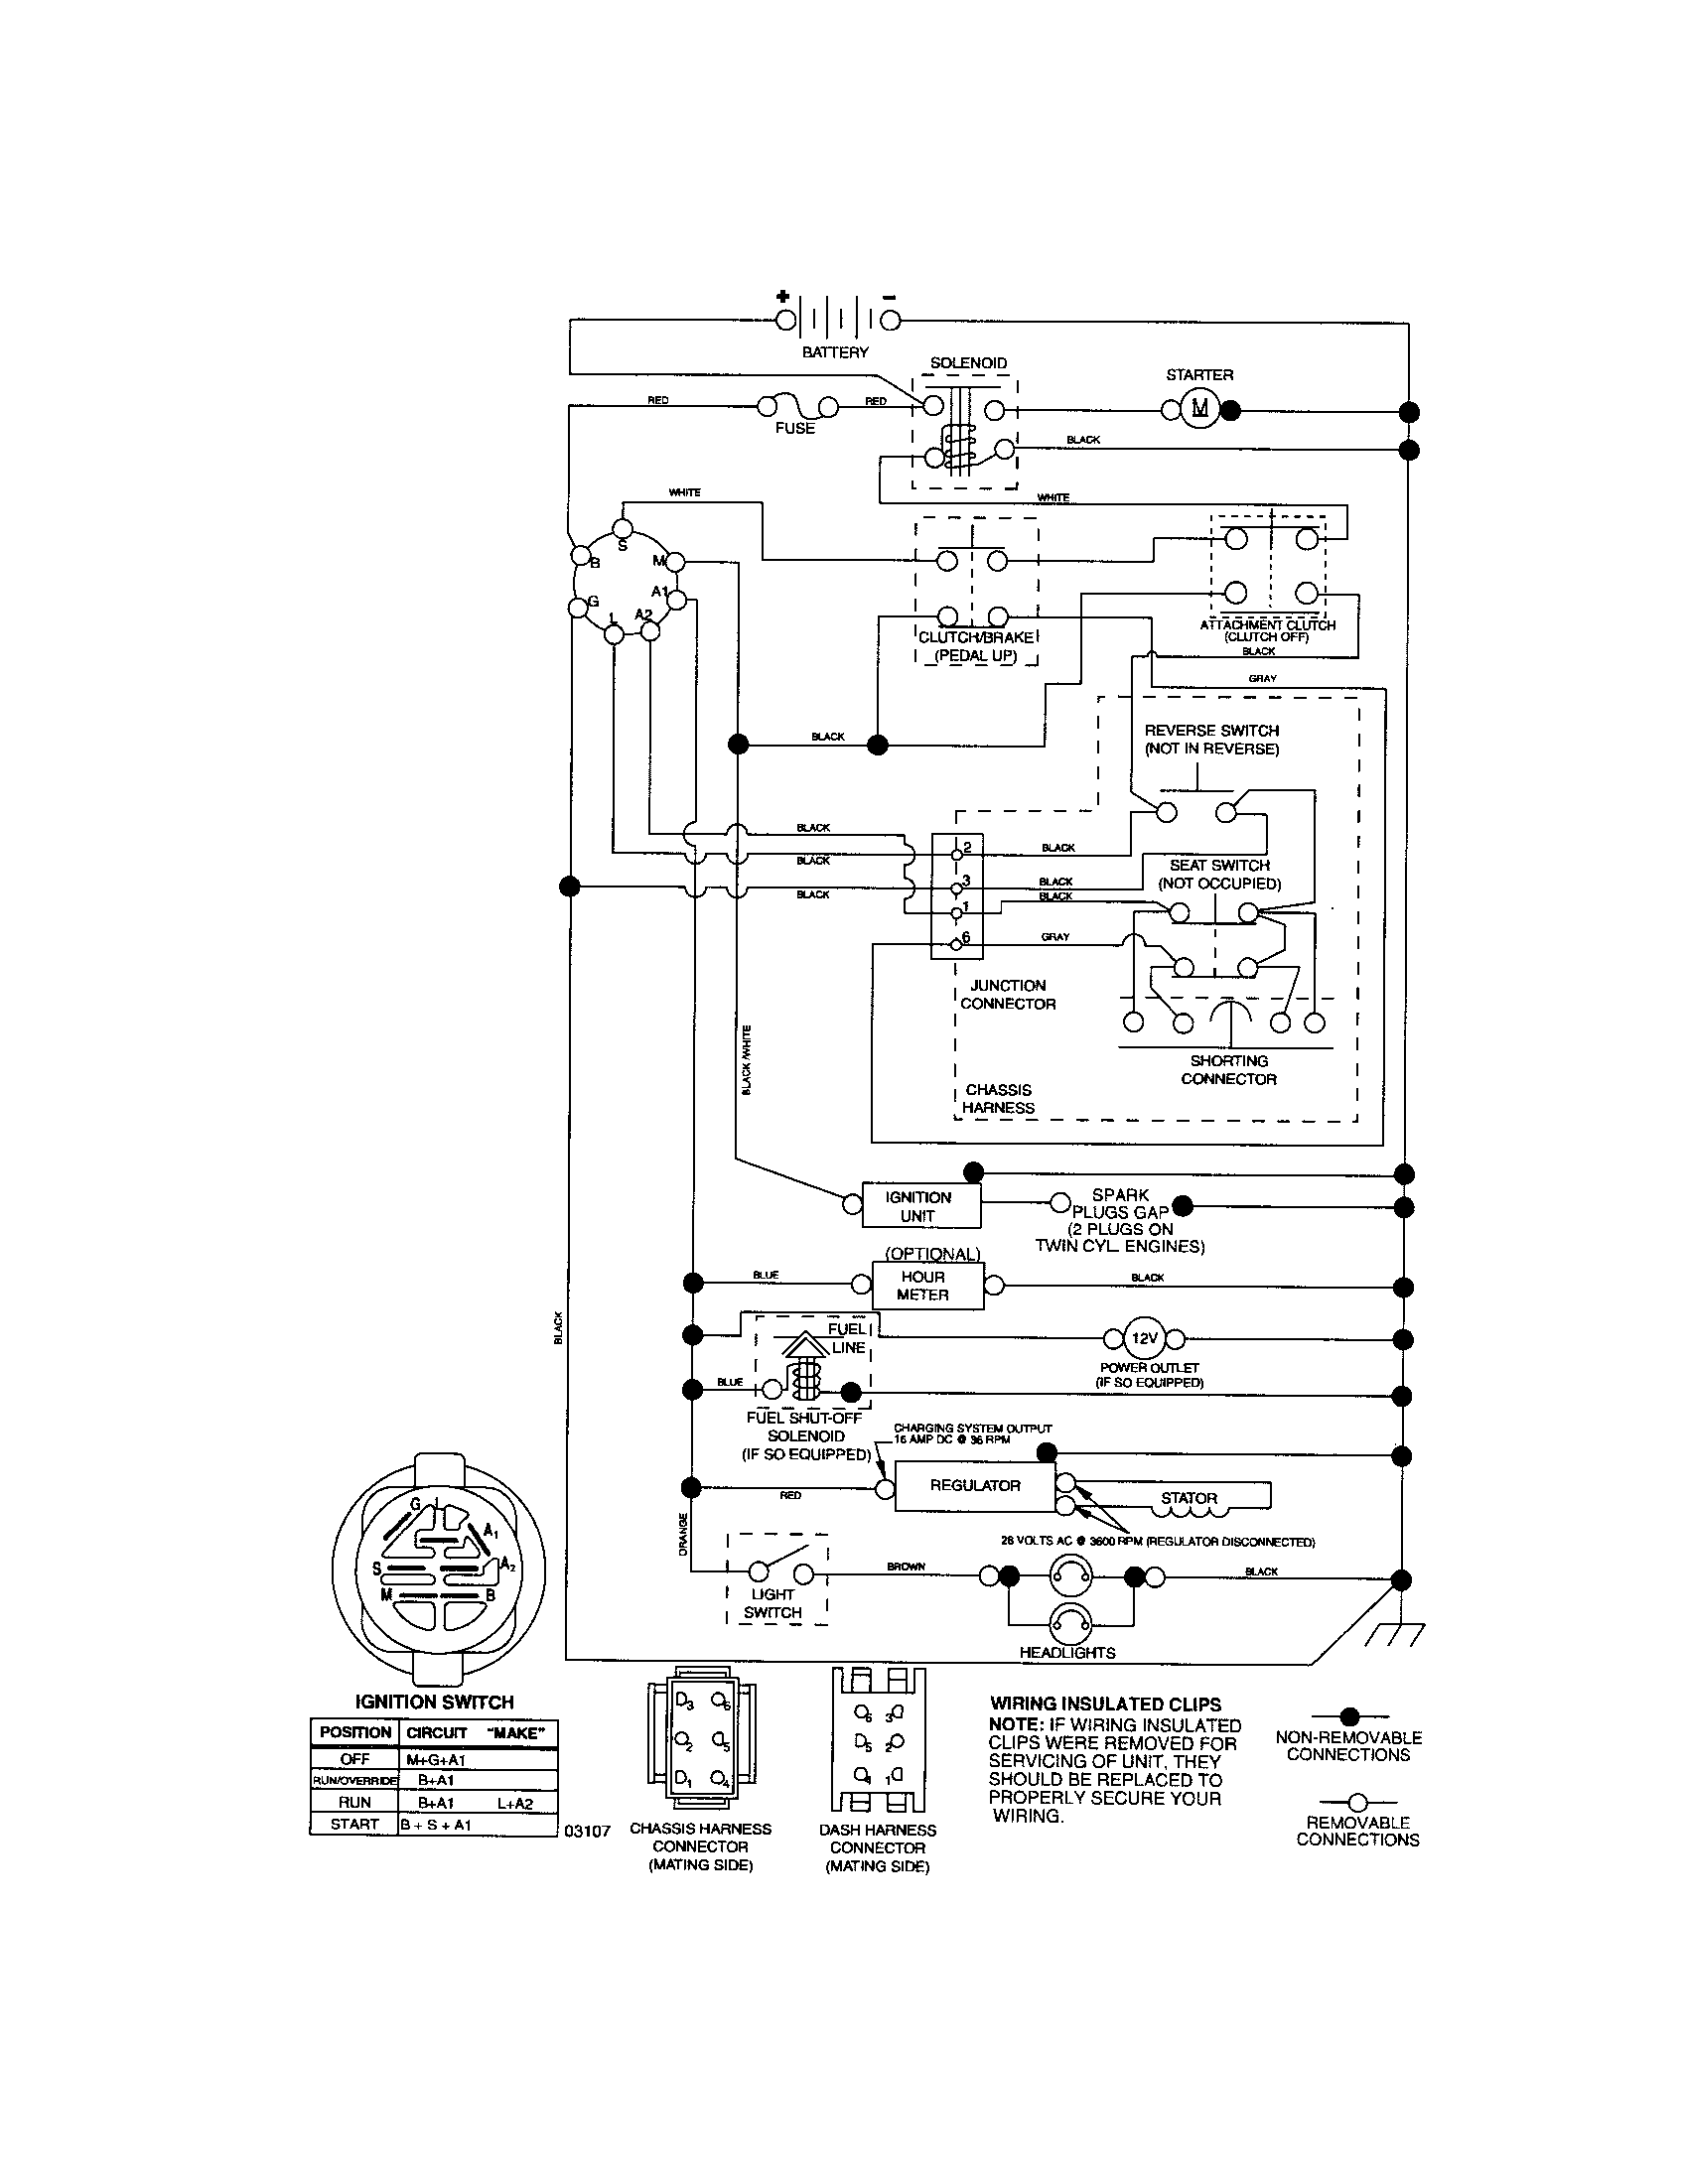 craftsman wiring diagrams wiring schematics diagram rh mychampagnedaze com  Wiring Diagrams 1 2 HP Kohler Engine K301S 19 HP Kohler Engine Wiring  Diagrams